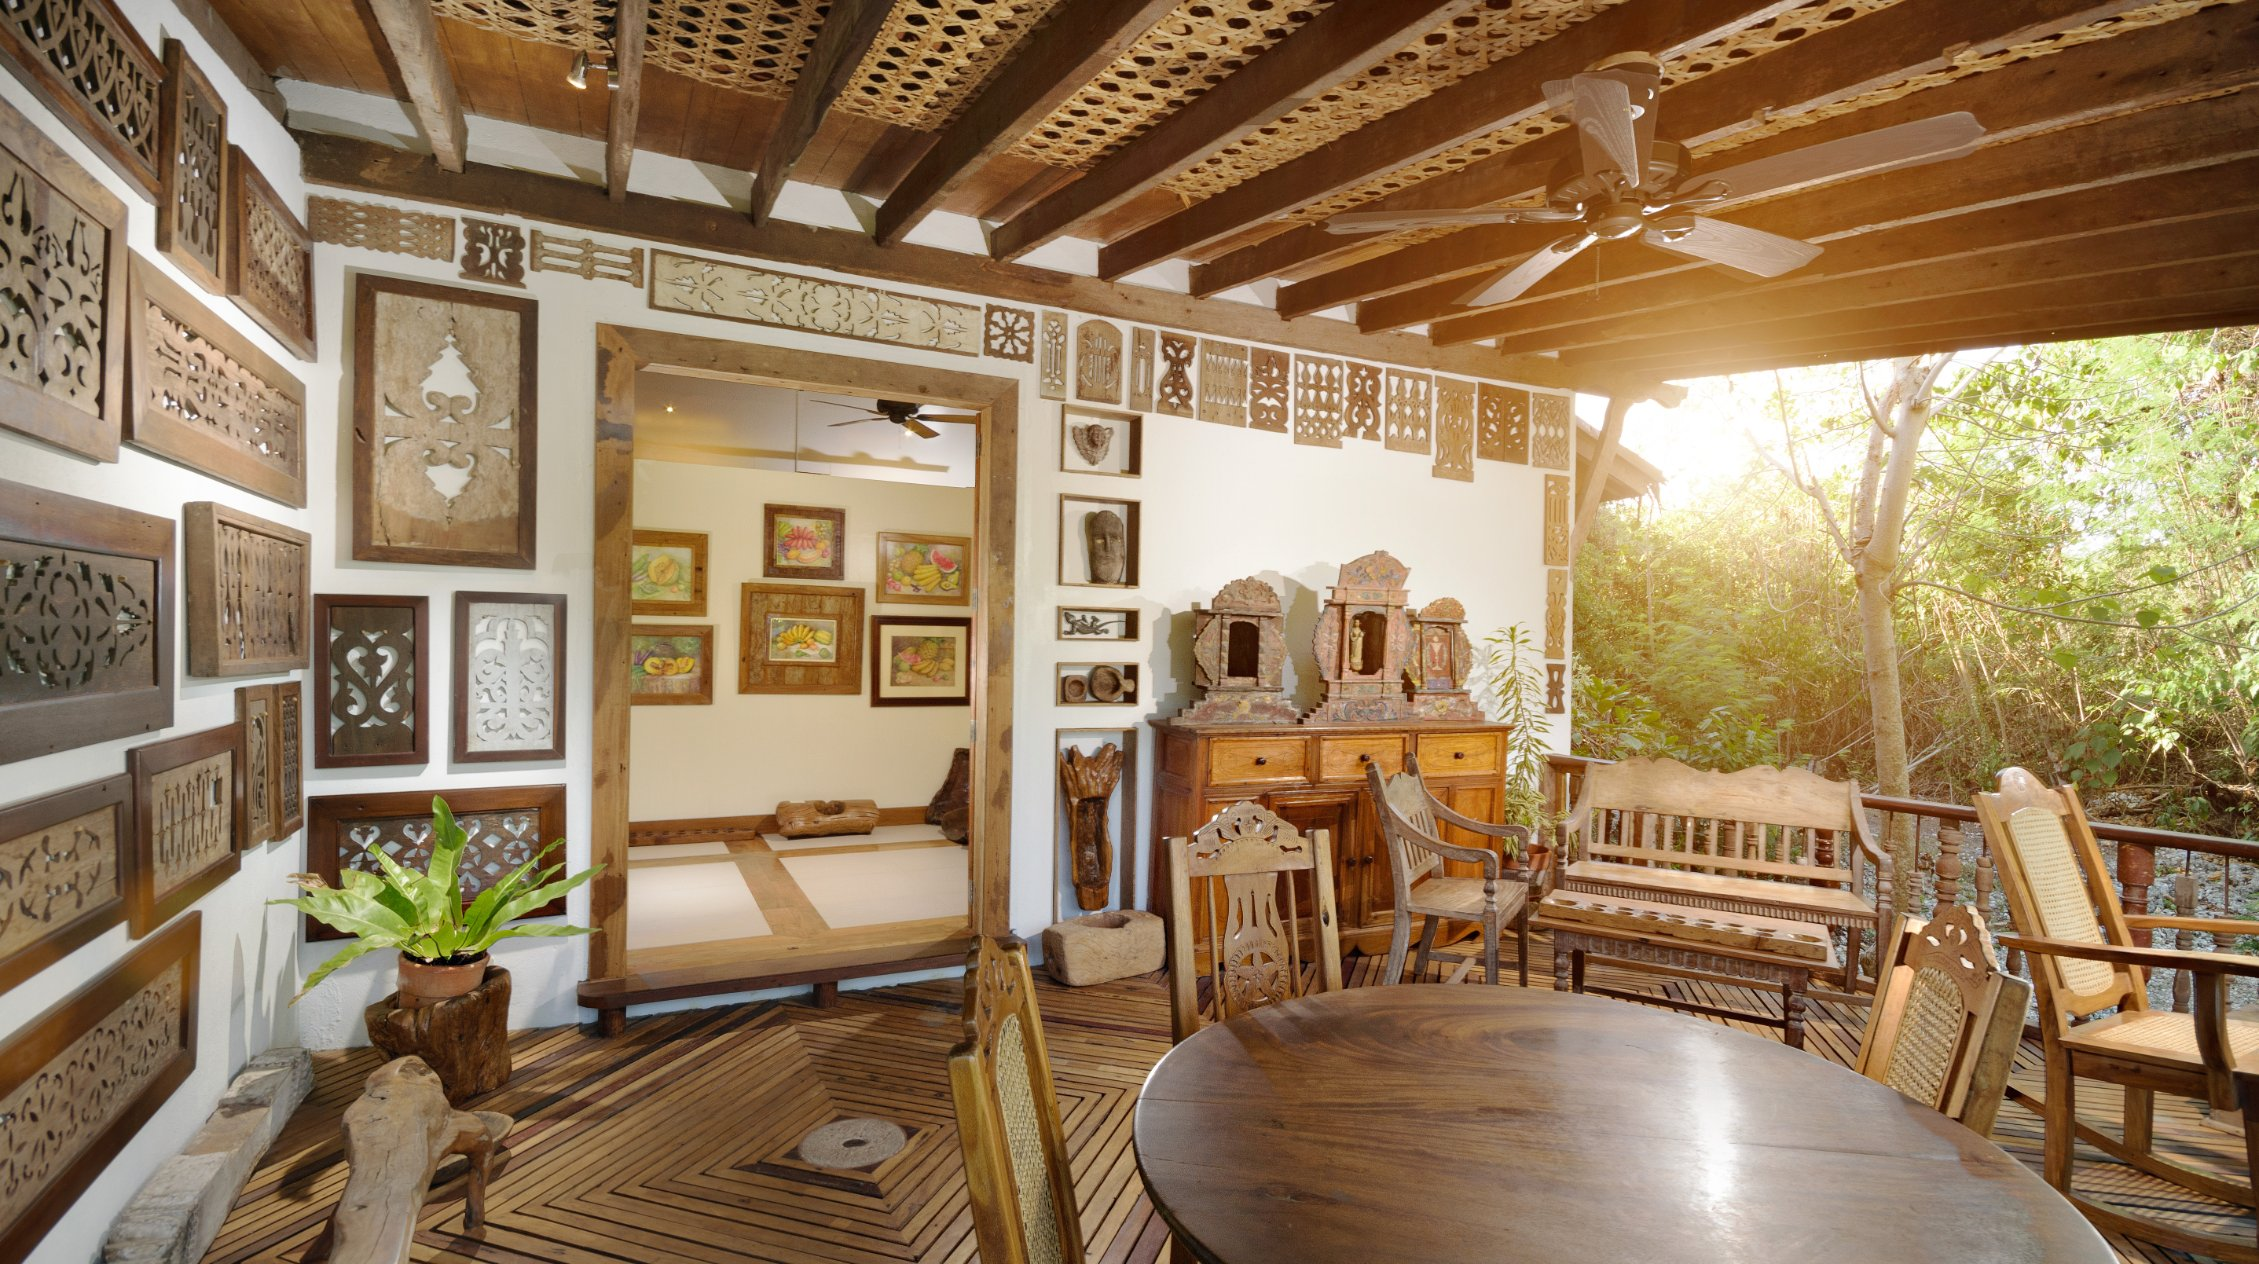 11 remote luxury resorts in the Philippines worth the ... on